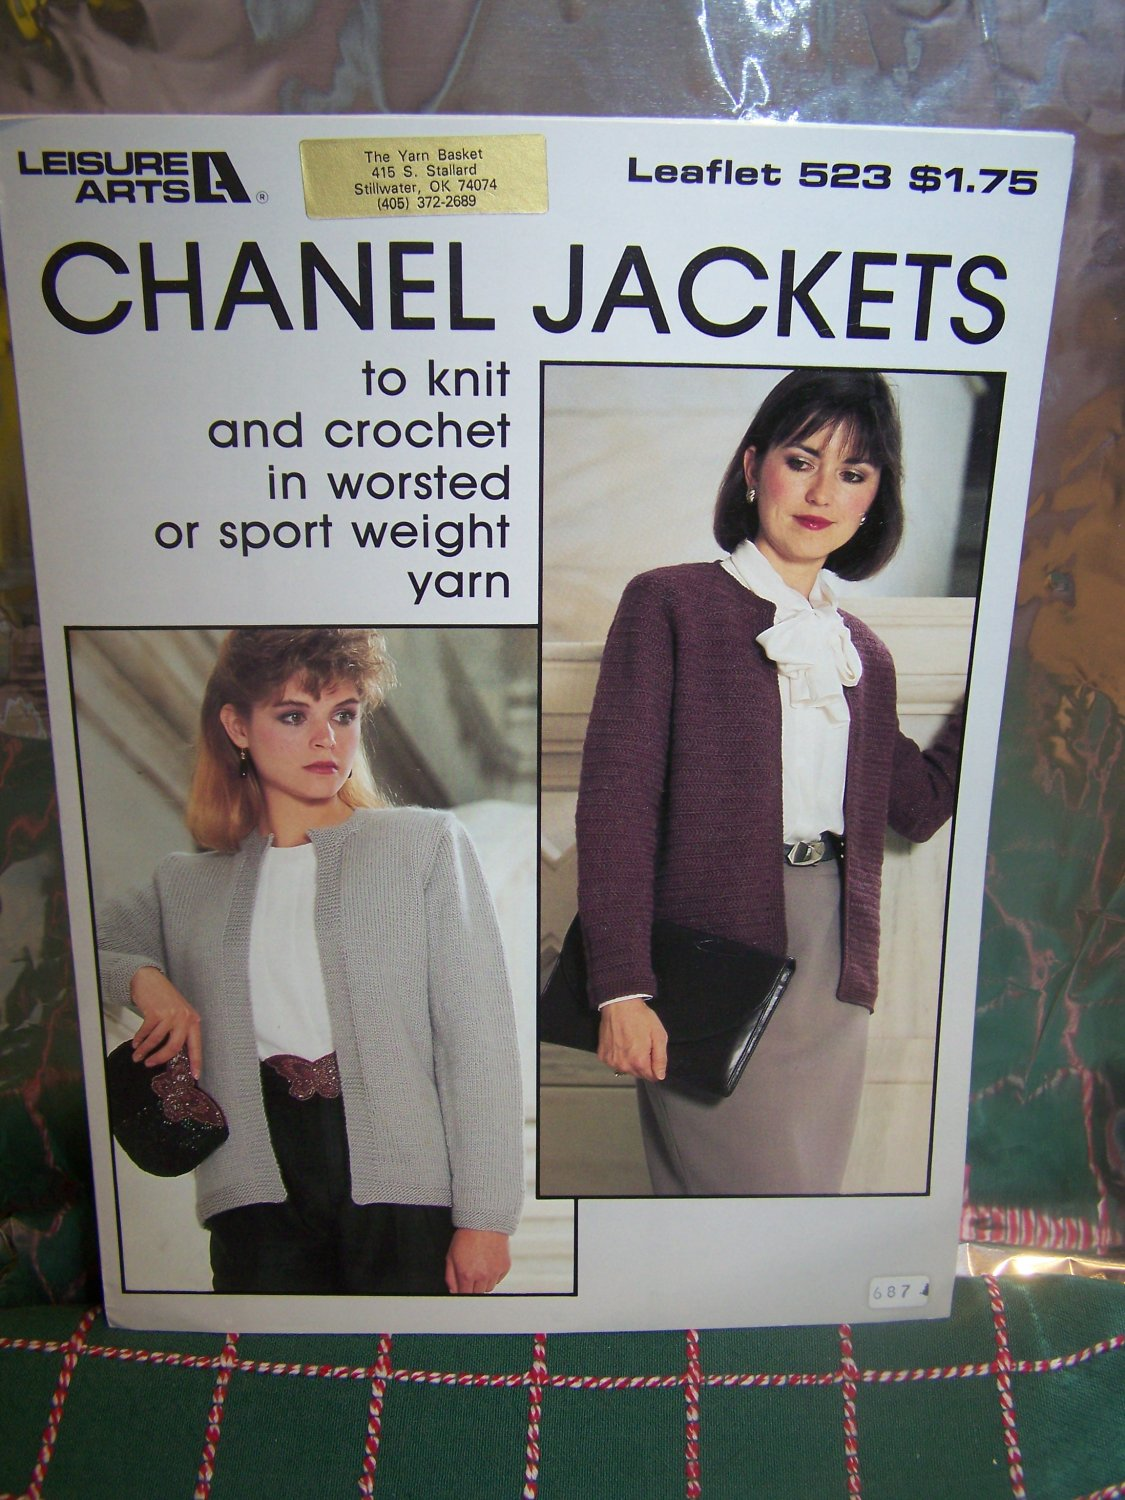 Vintage Chanel Jackets Knitting & Crochet Patterns 523